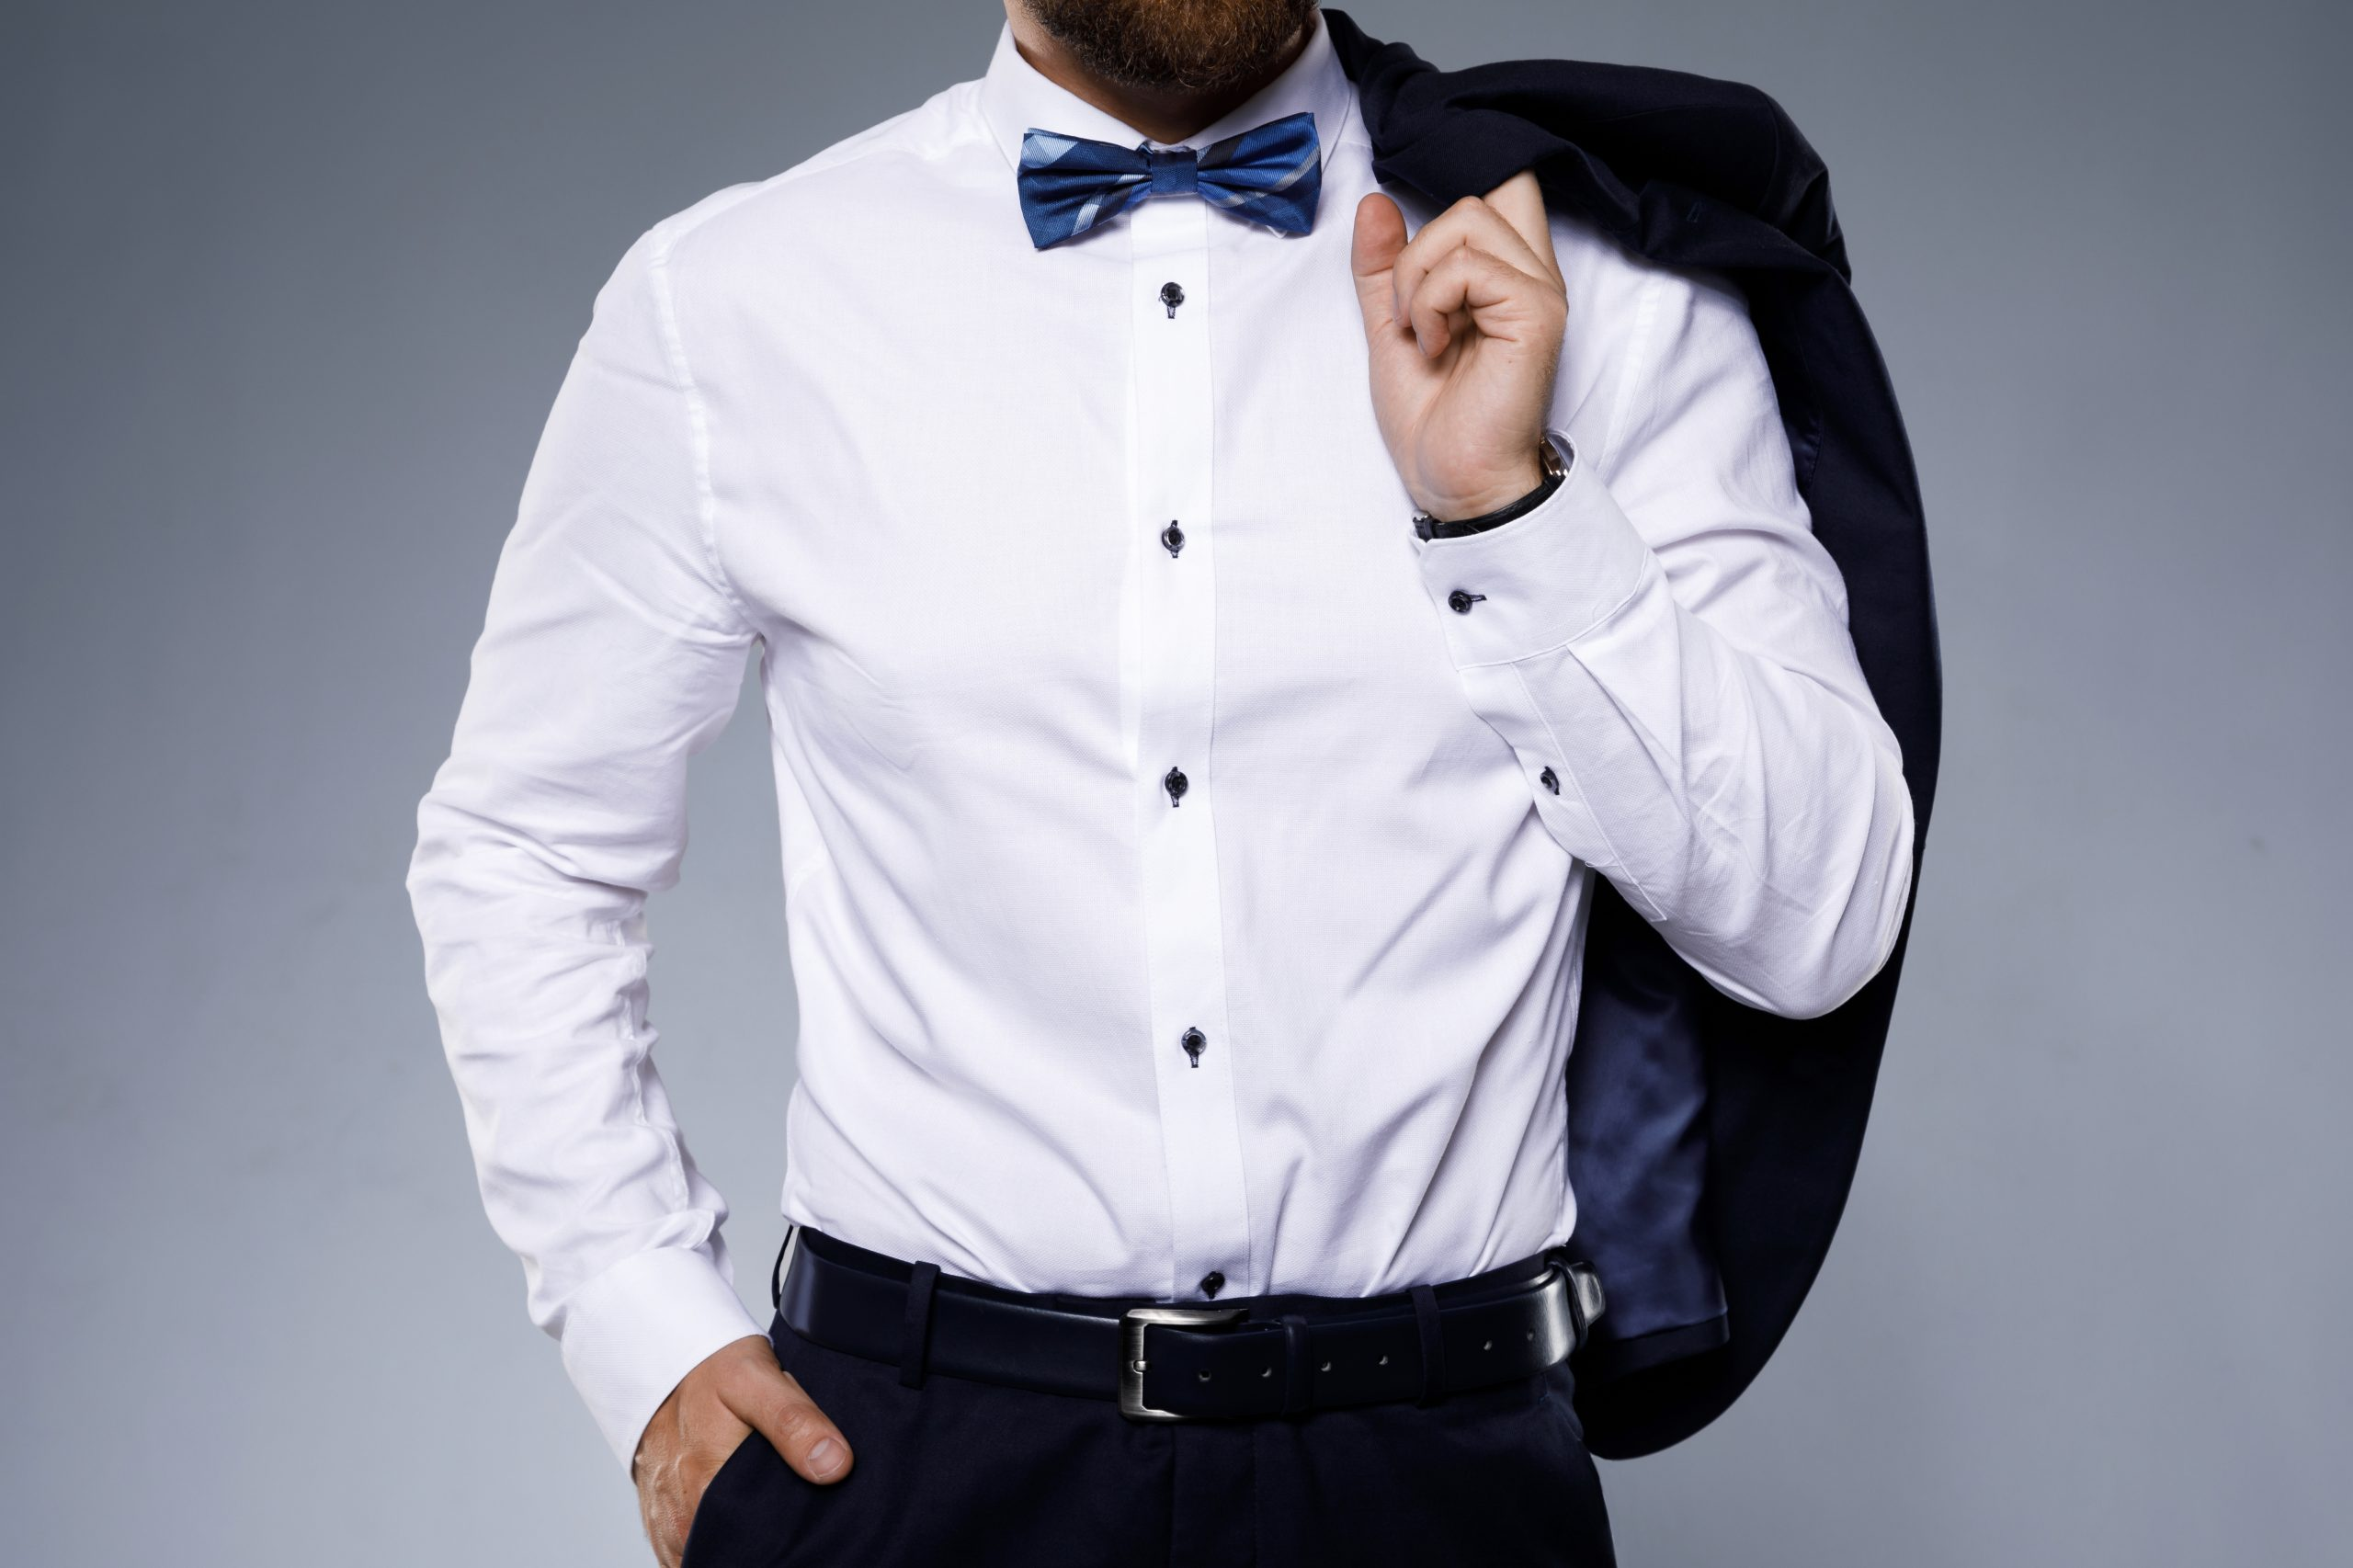 Stylish man wearing bow tie